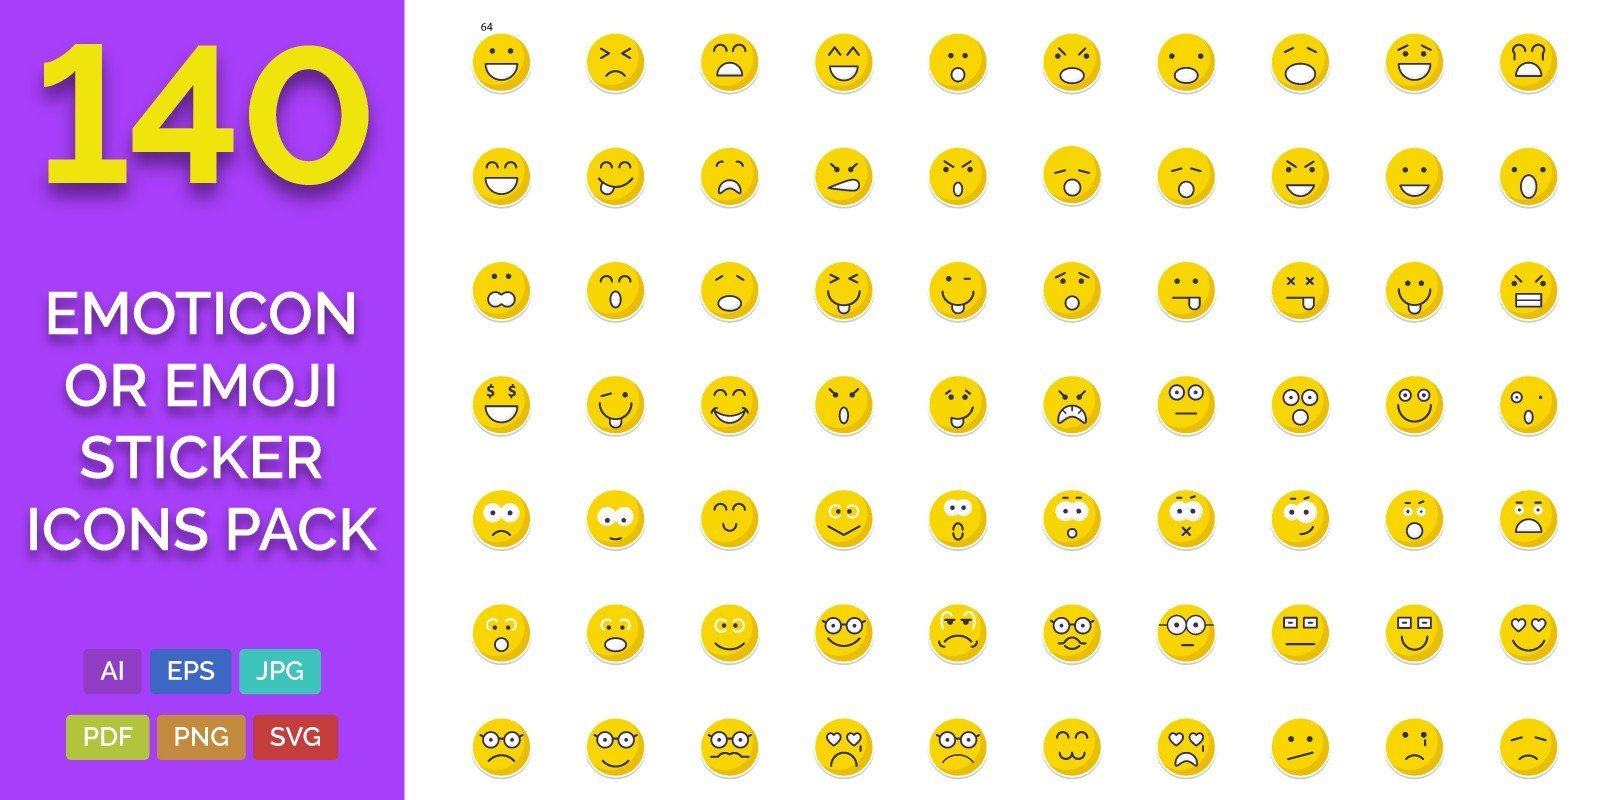 140 Emoticon or Emoji Sticker Icons Pack